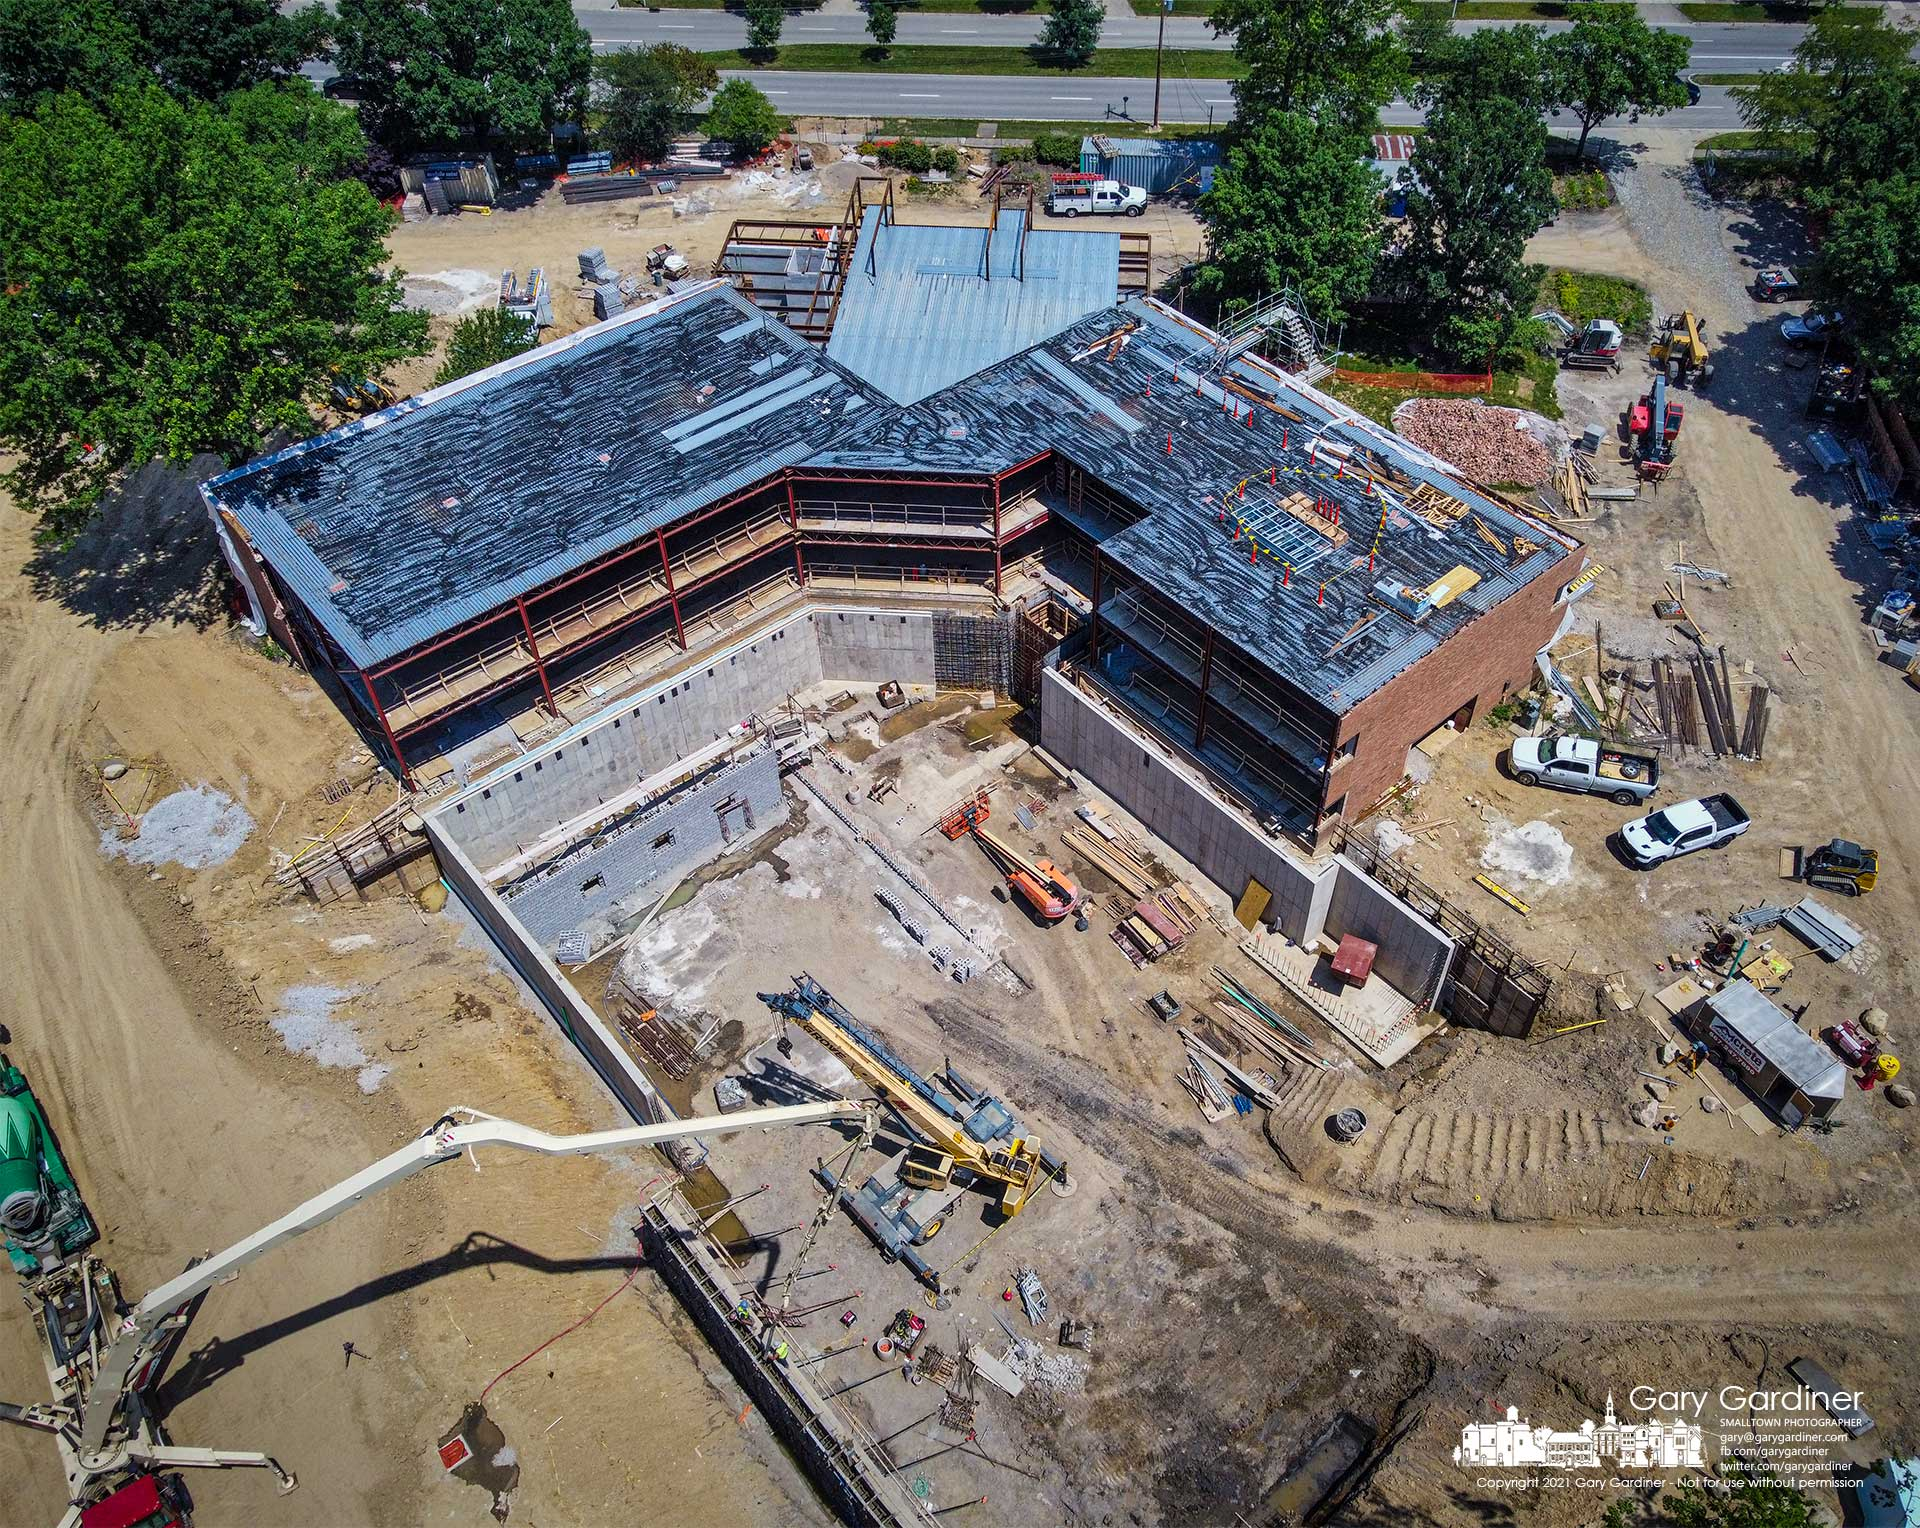 Workers pump concrete into forms that will become the exterior walls of the basement area of the new Westerville Police and Mayors Court which will include a firing range and secure area for the transfer of prisoners into the court system. My Final Photo for June 23, 2021.